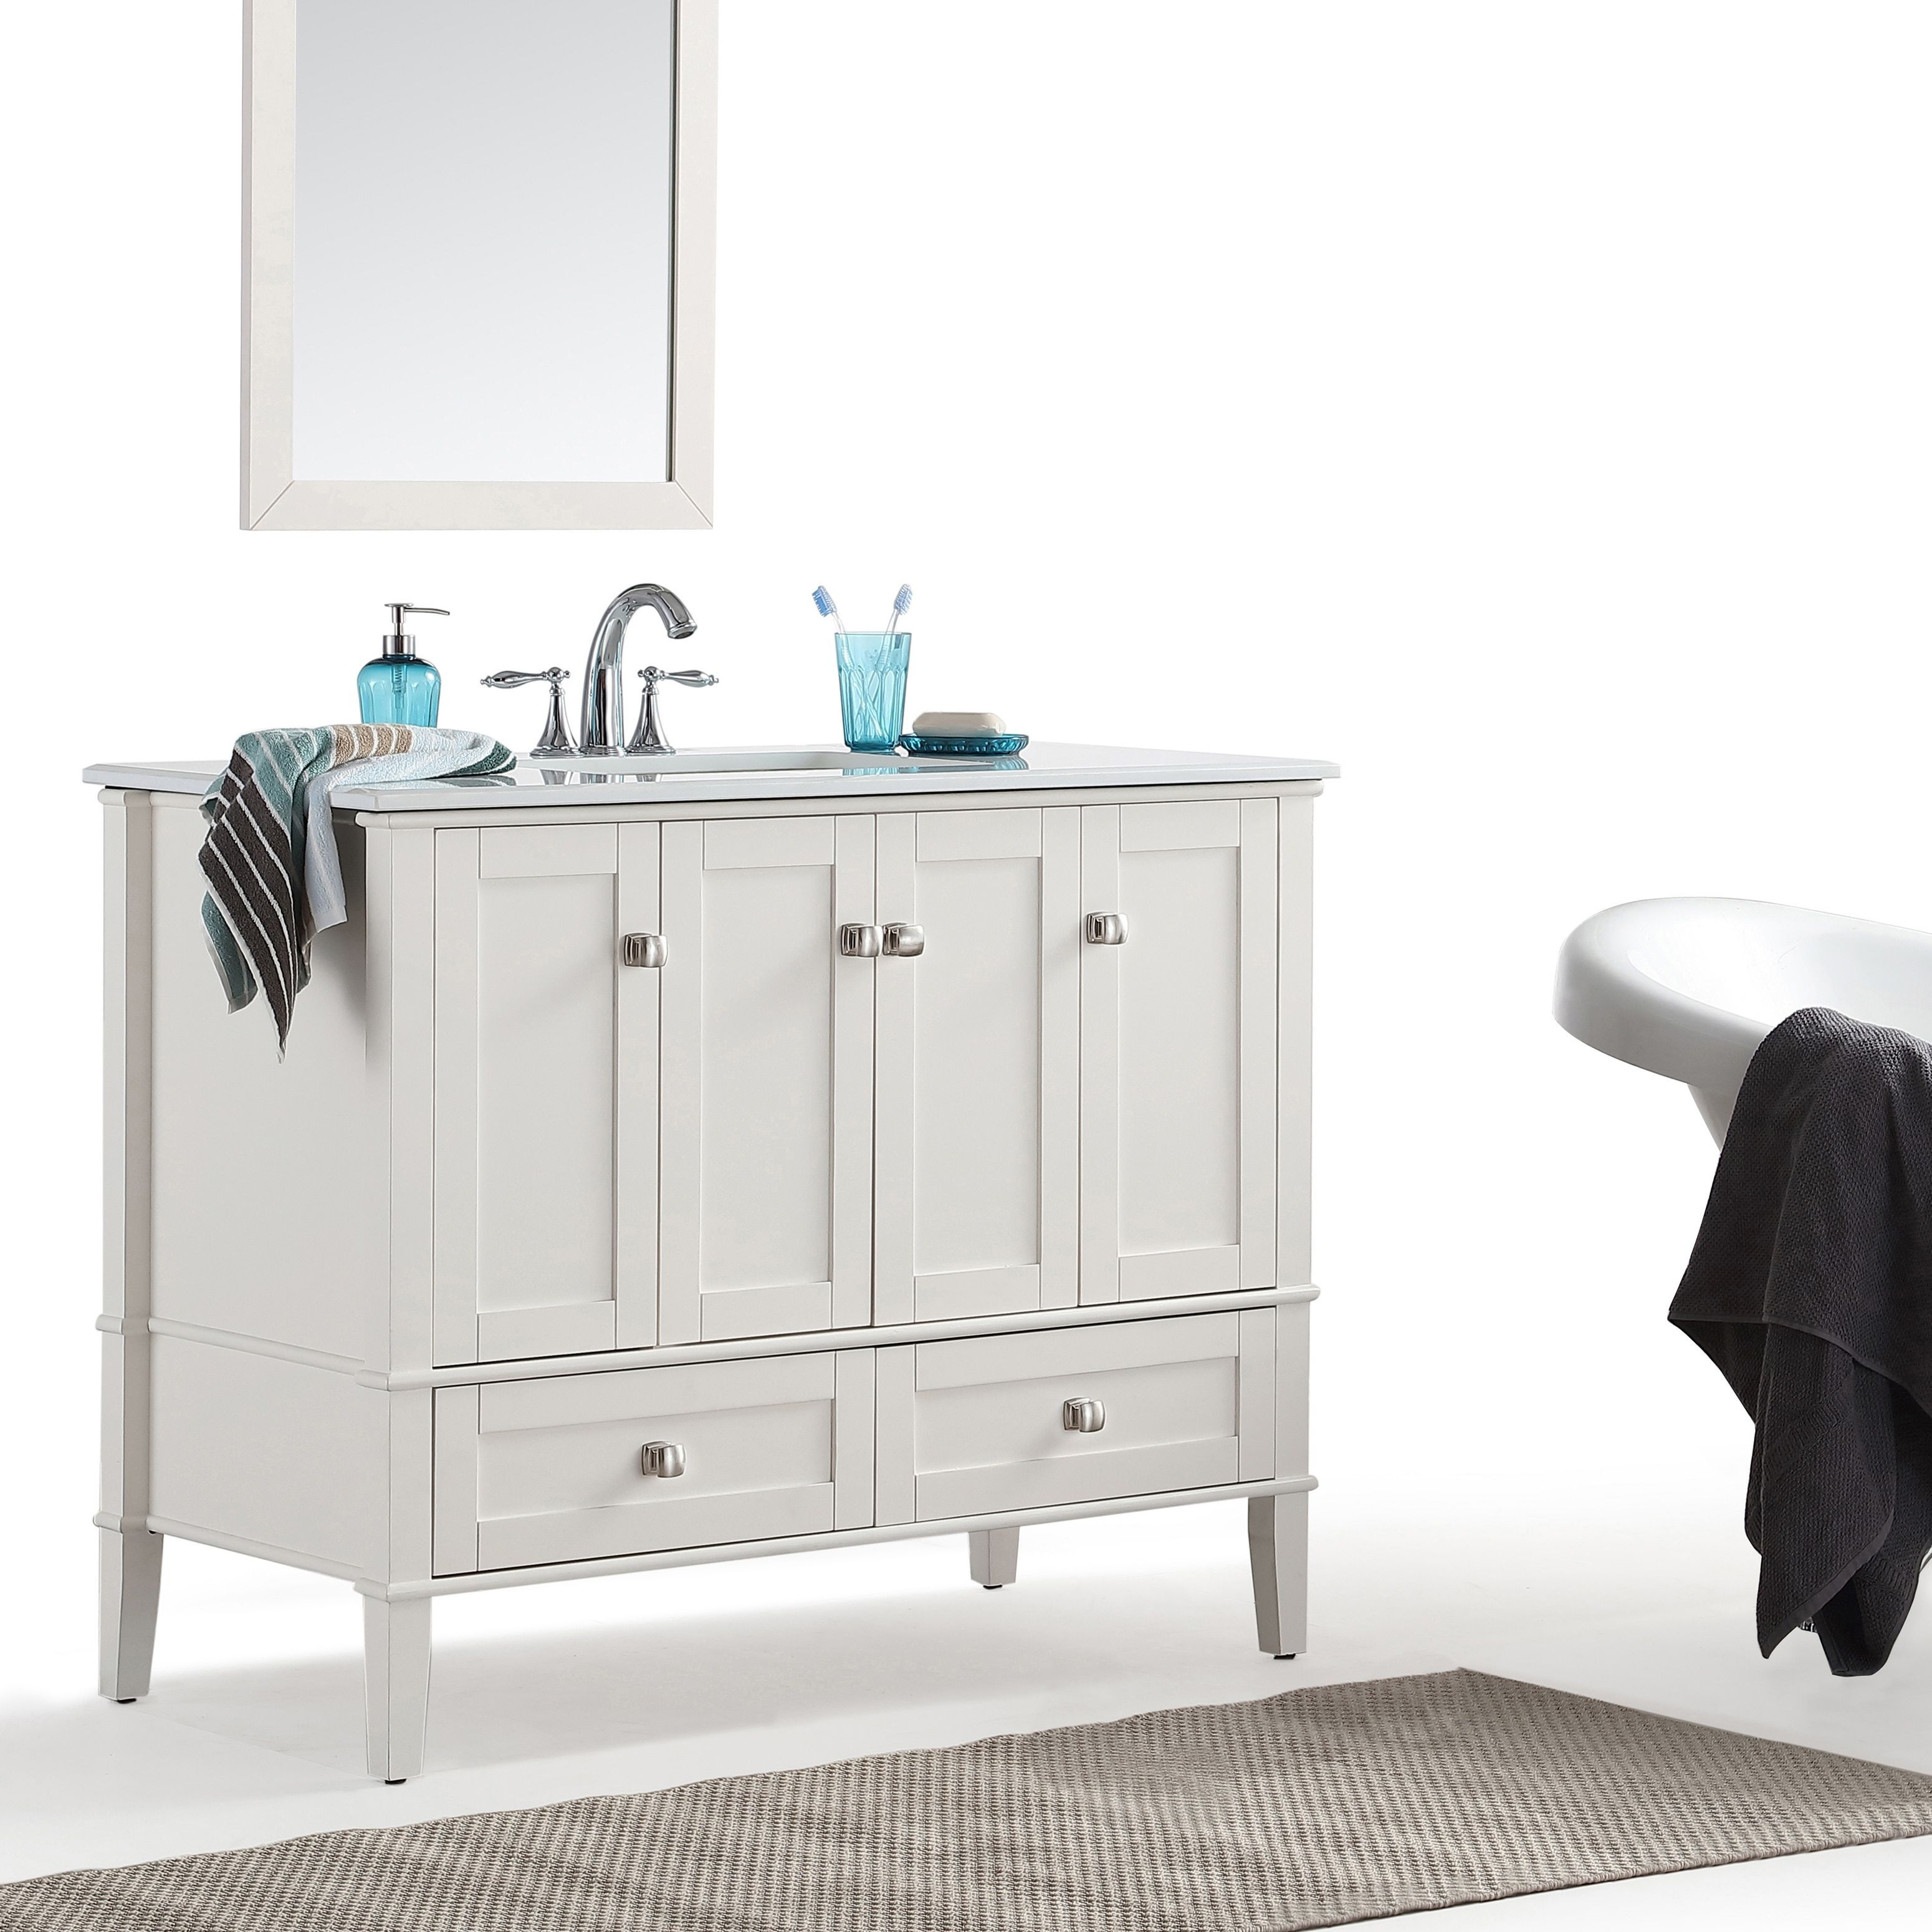 Our Best Bathroom Furniture Deals Marble Vanity Tops Single Bathroom Vanity Bathroom Vanity